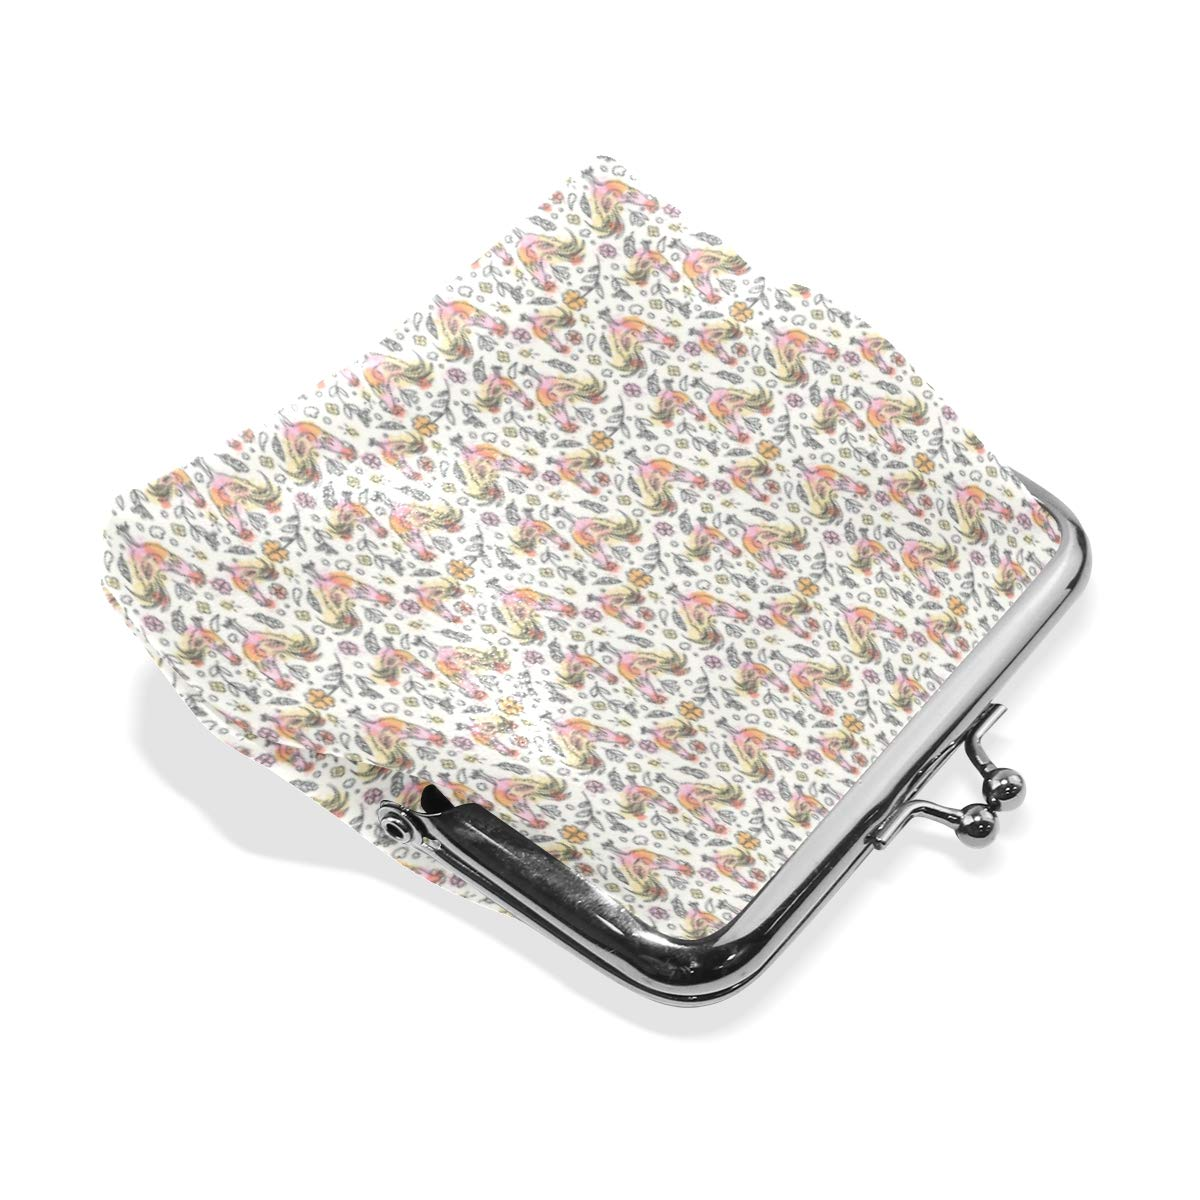 Exquisite Buckle Coin Purses Red Rooster Decor Gift Mini Wallet Key Card Holder Purse for Women